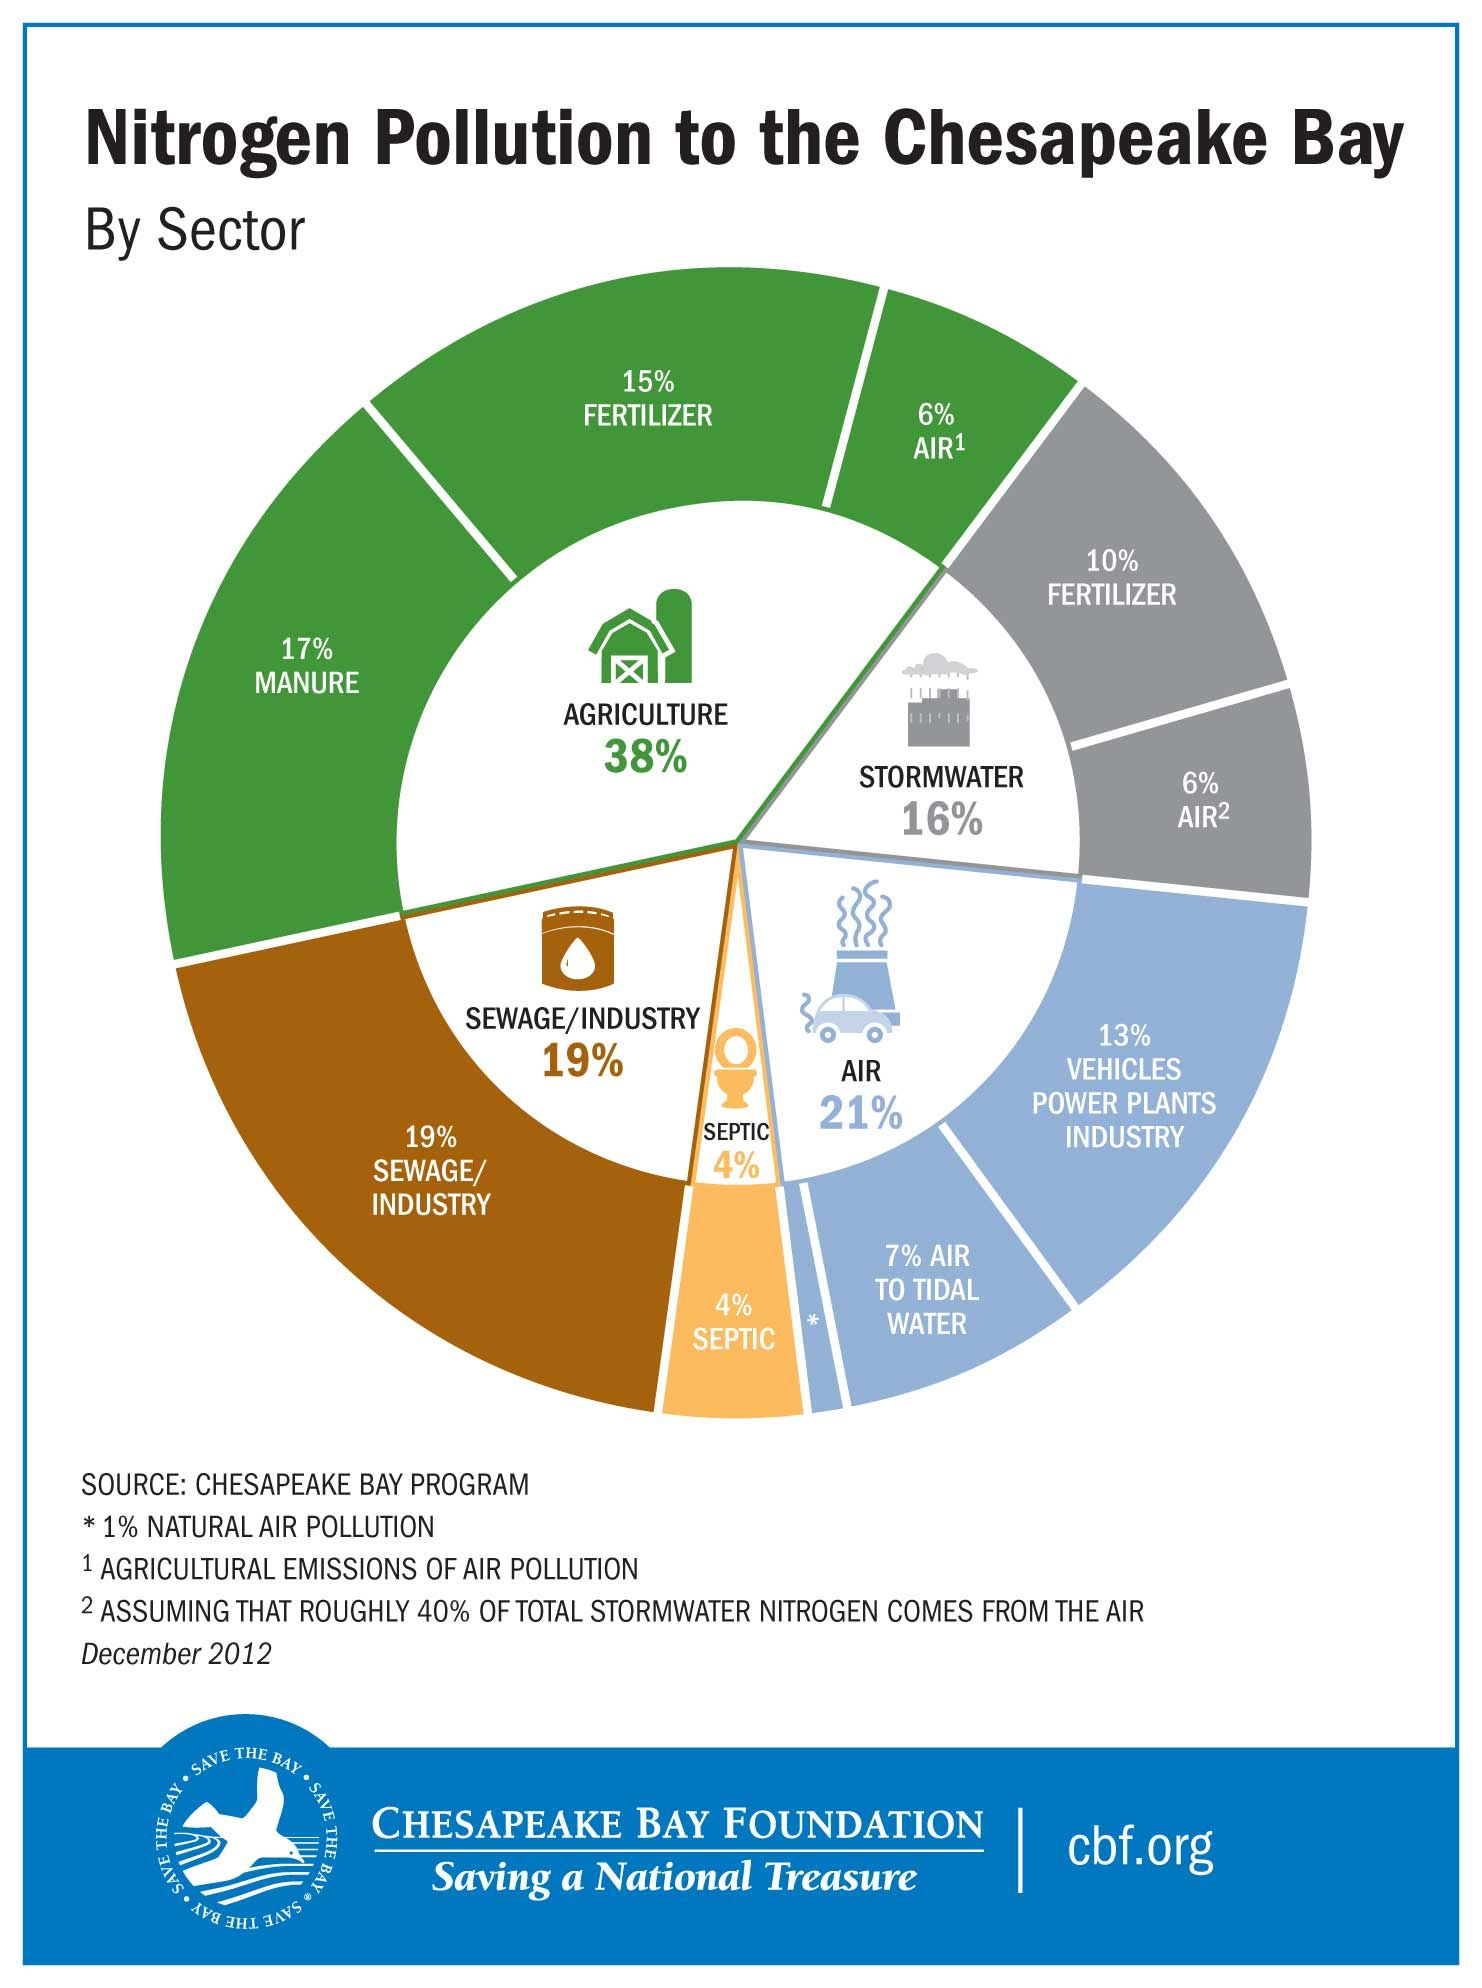 hight resolution of pie chart showing nitrogen pollution to the chesapeake bay by sector